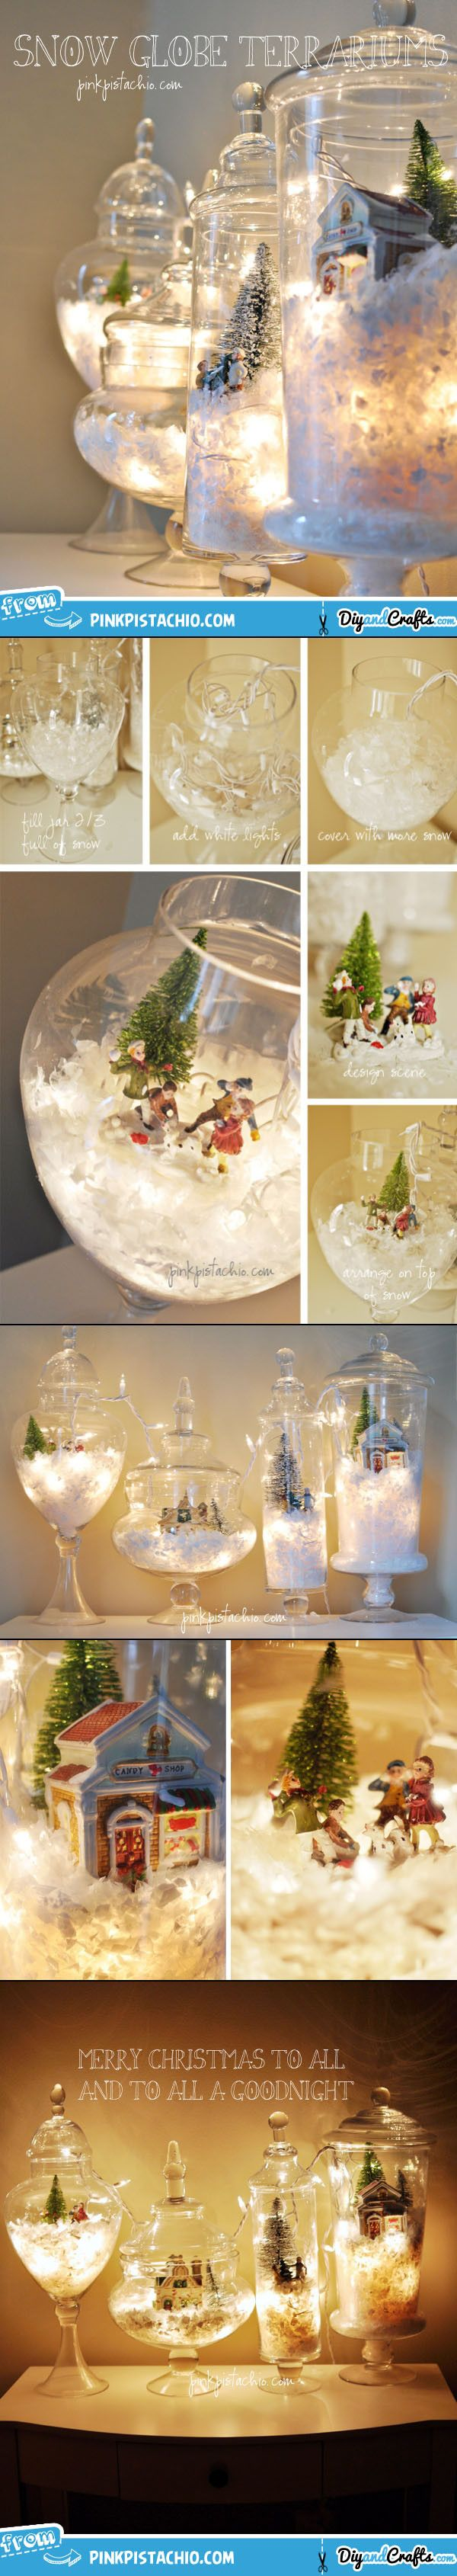 Snow Globe Terrariums | #DIY